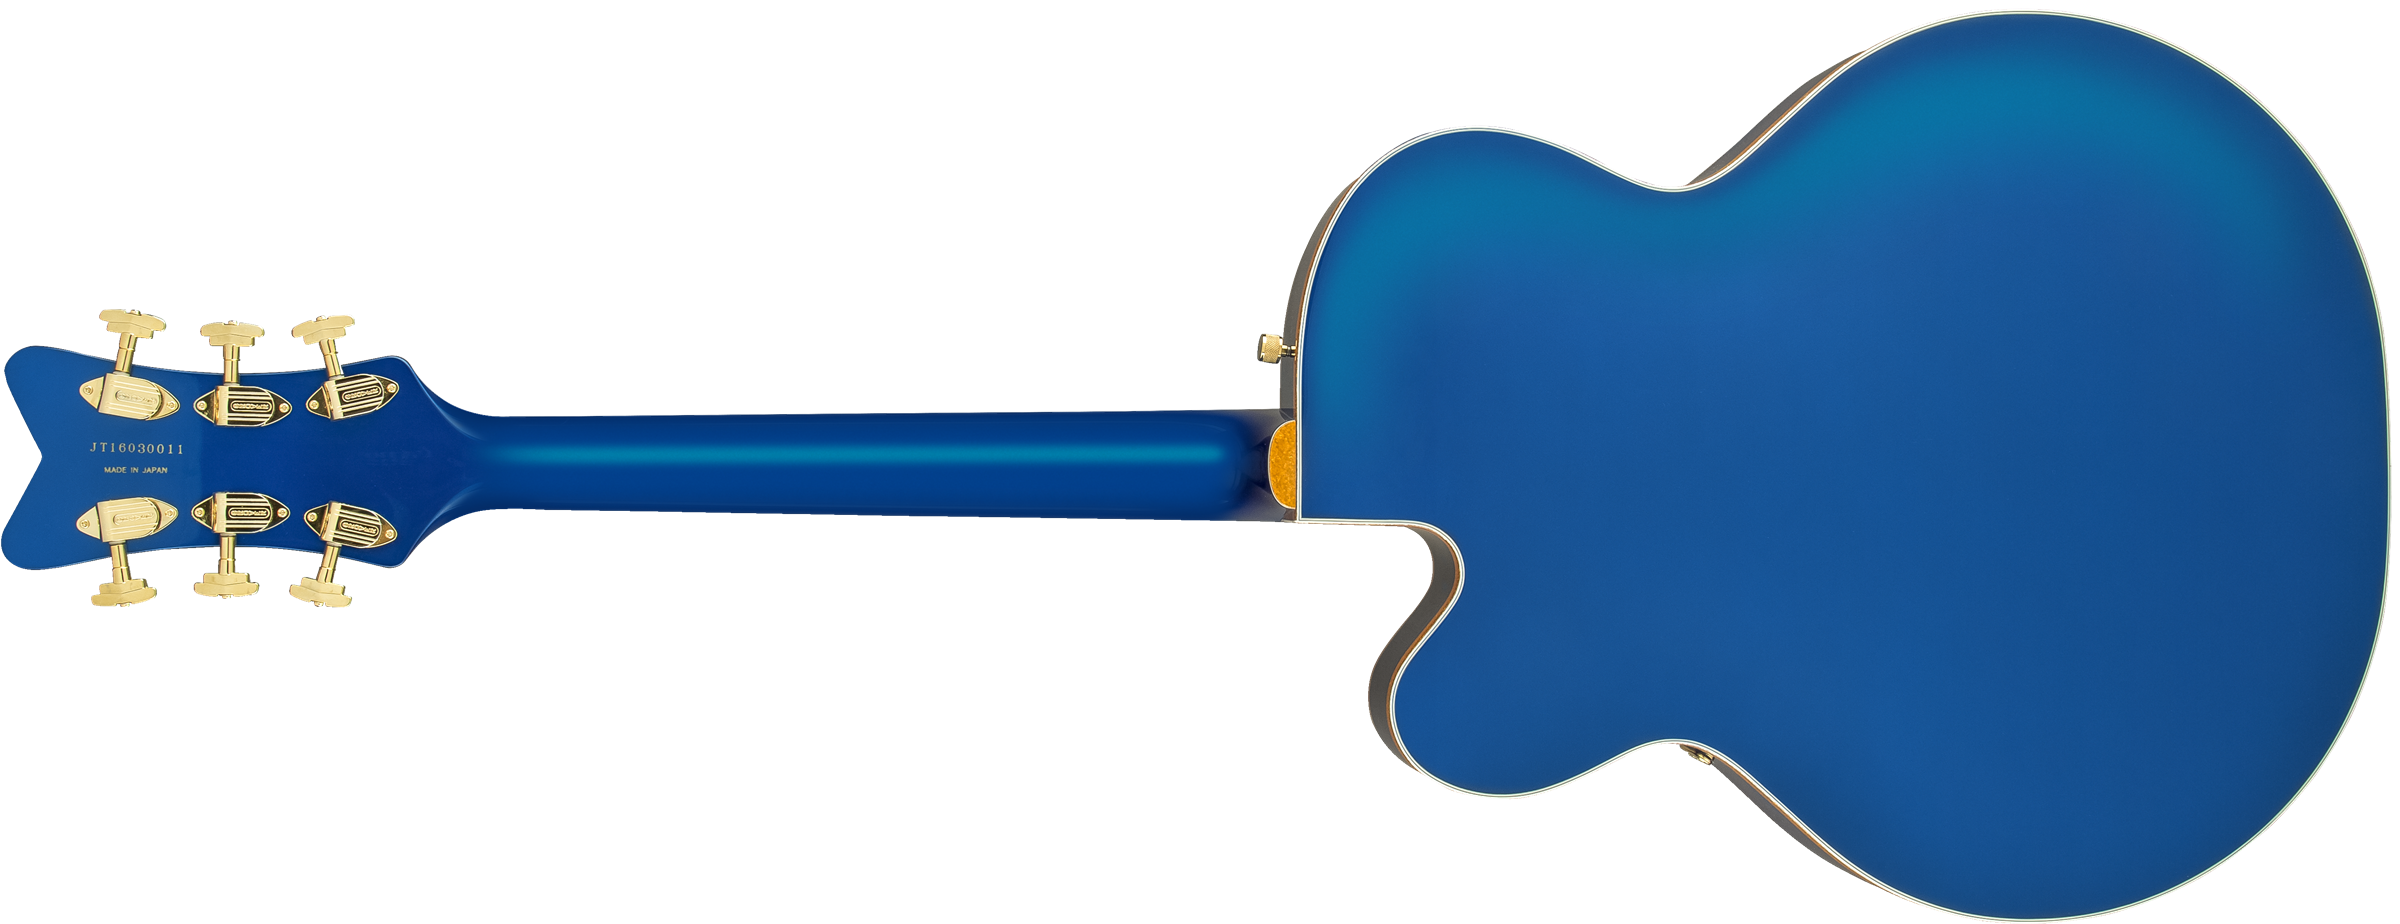 Clipart guitar winged. Hollow body g t